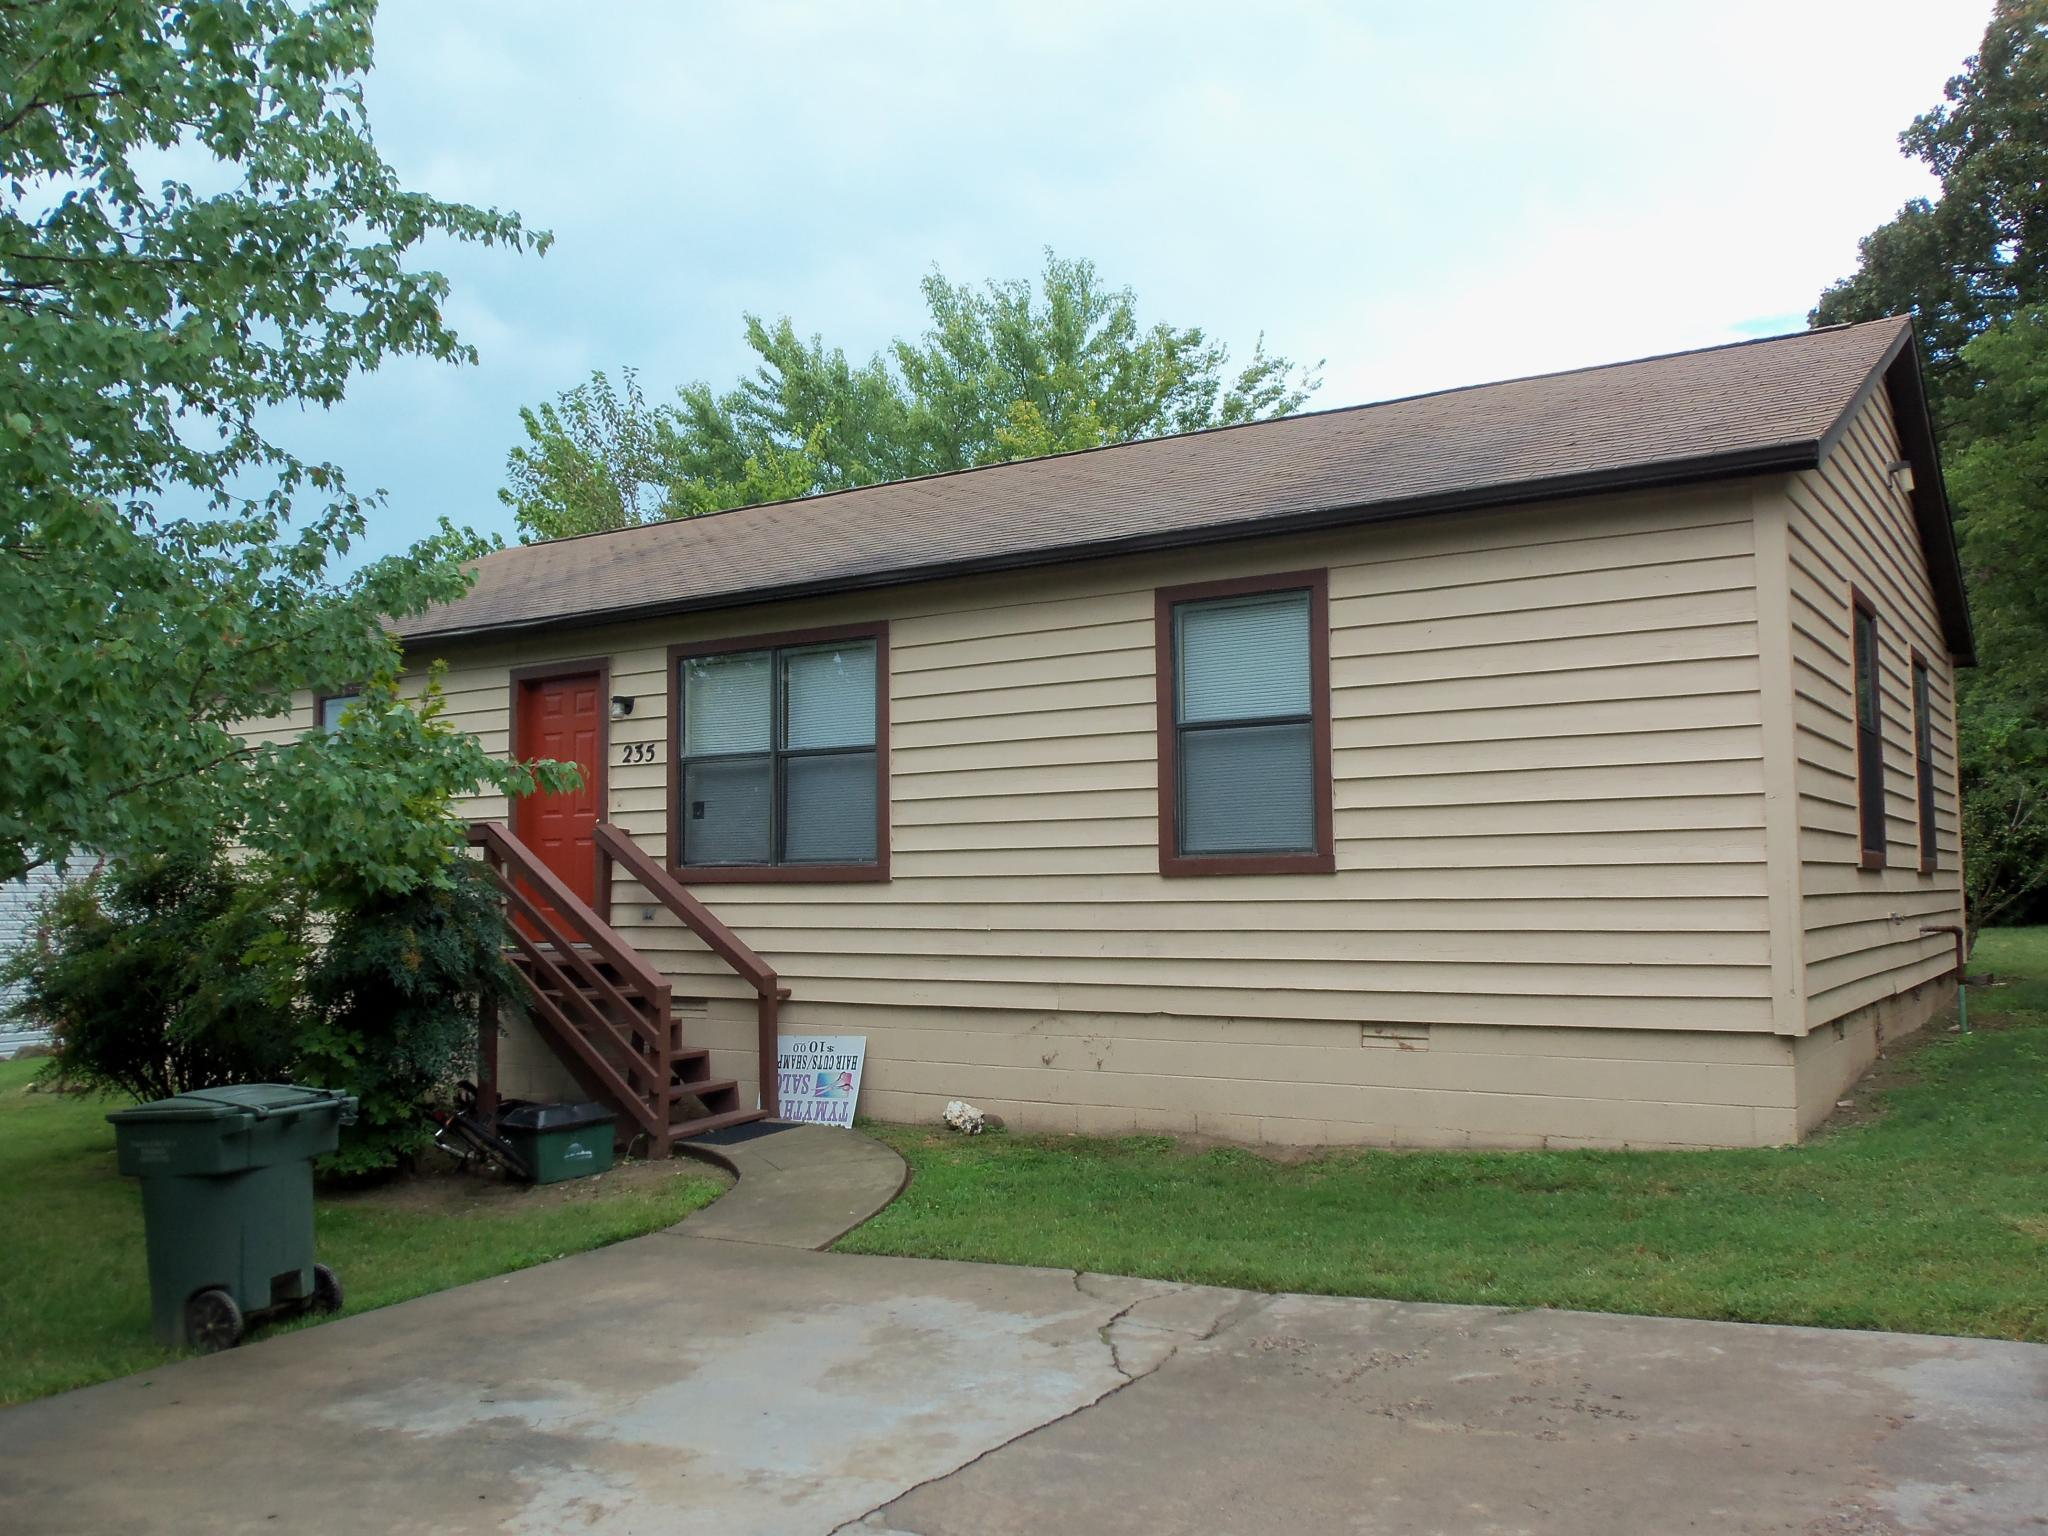 235 S Eastern Ave Fayetteville Ar 72701 For Rent Trulia